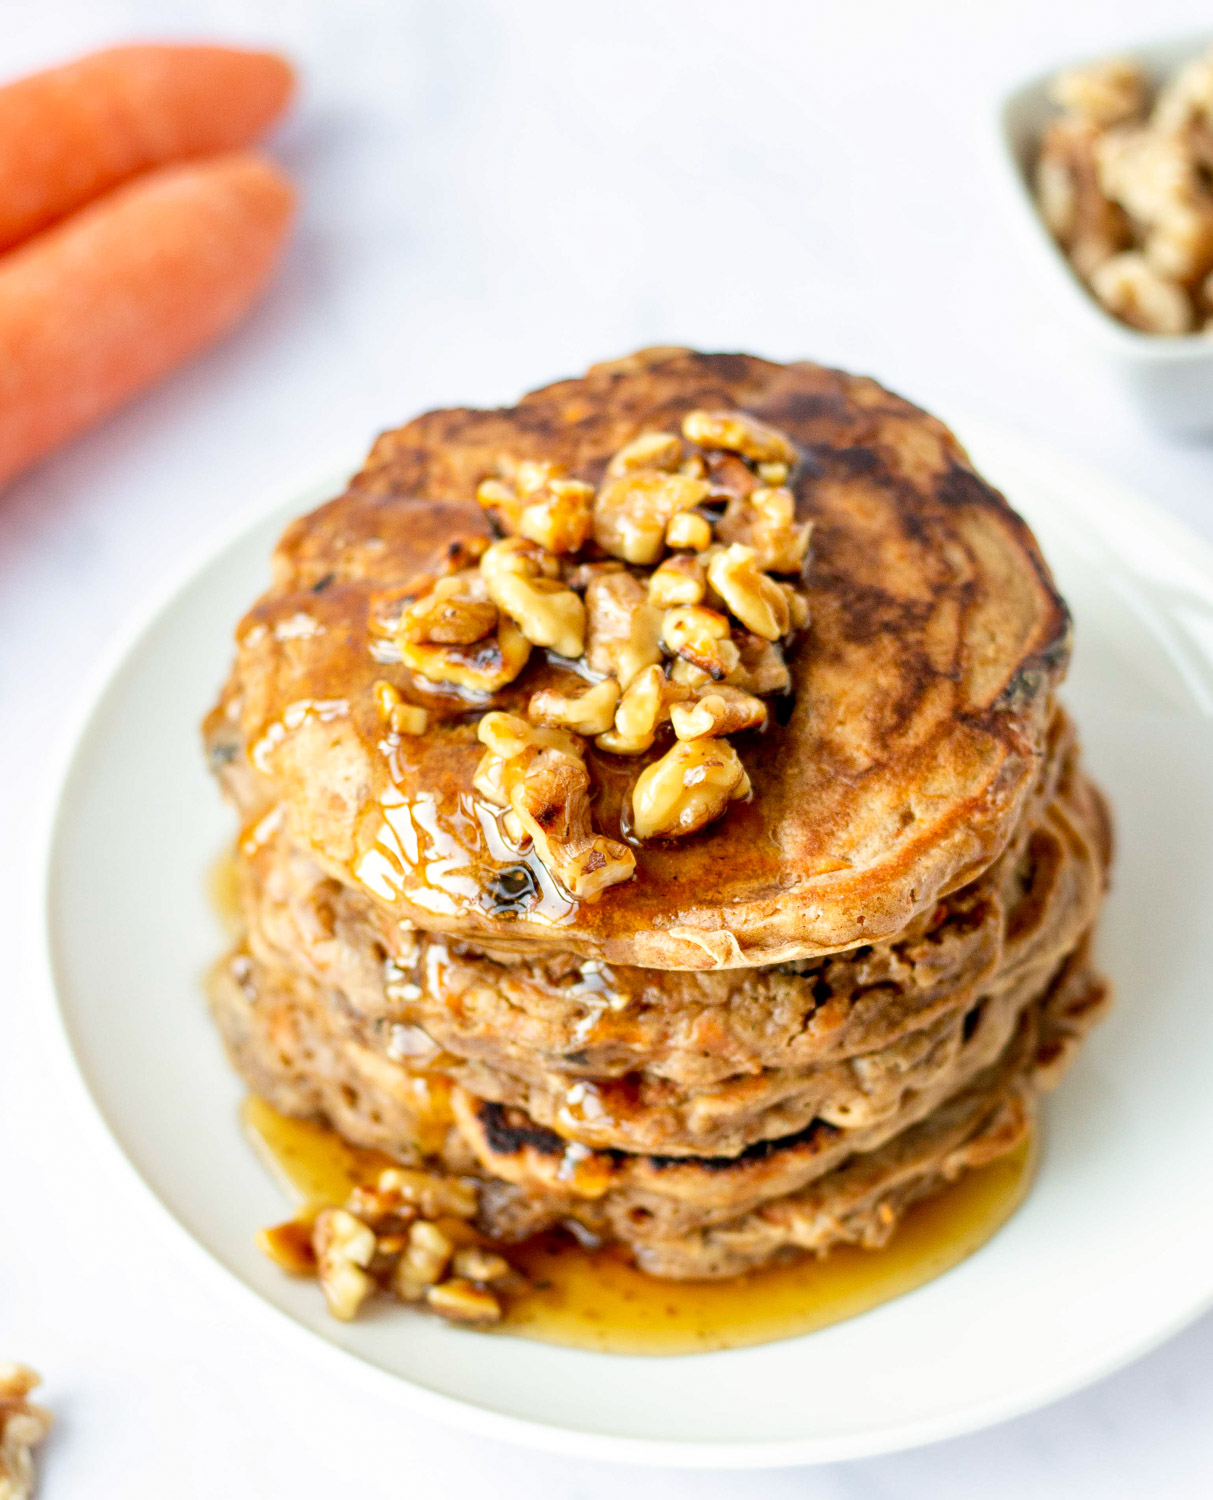 stack of carrot cake pancakes topped with walnut syrup and a carrot in the background